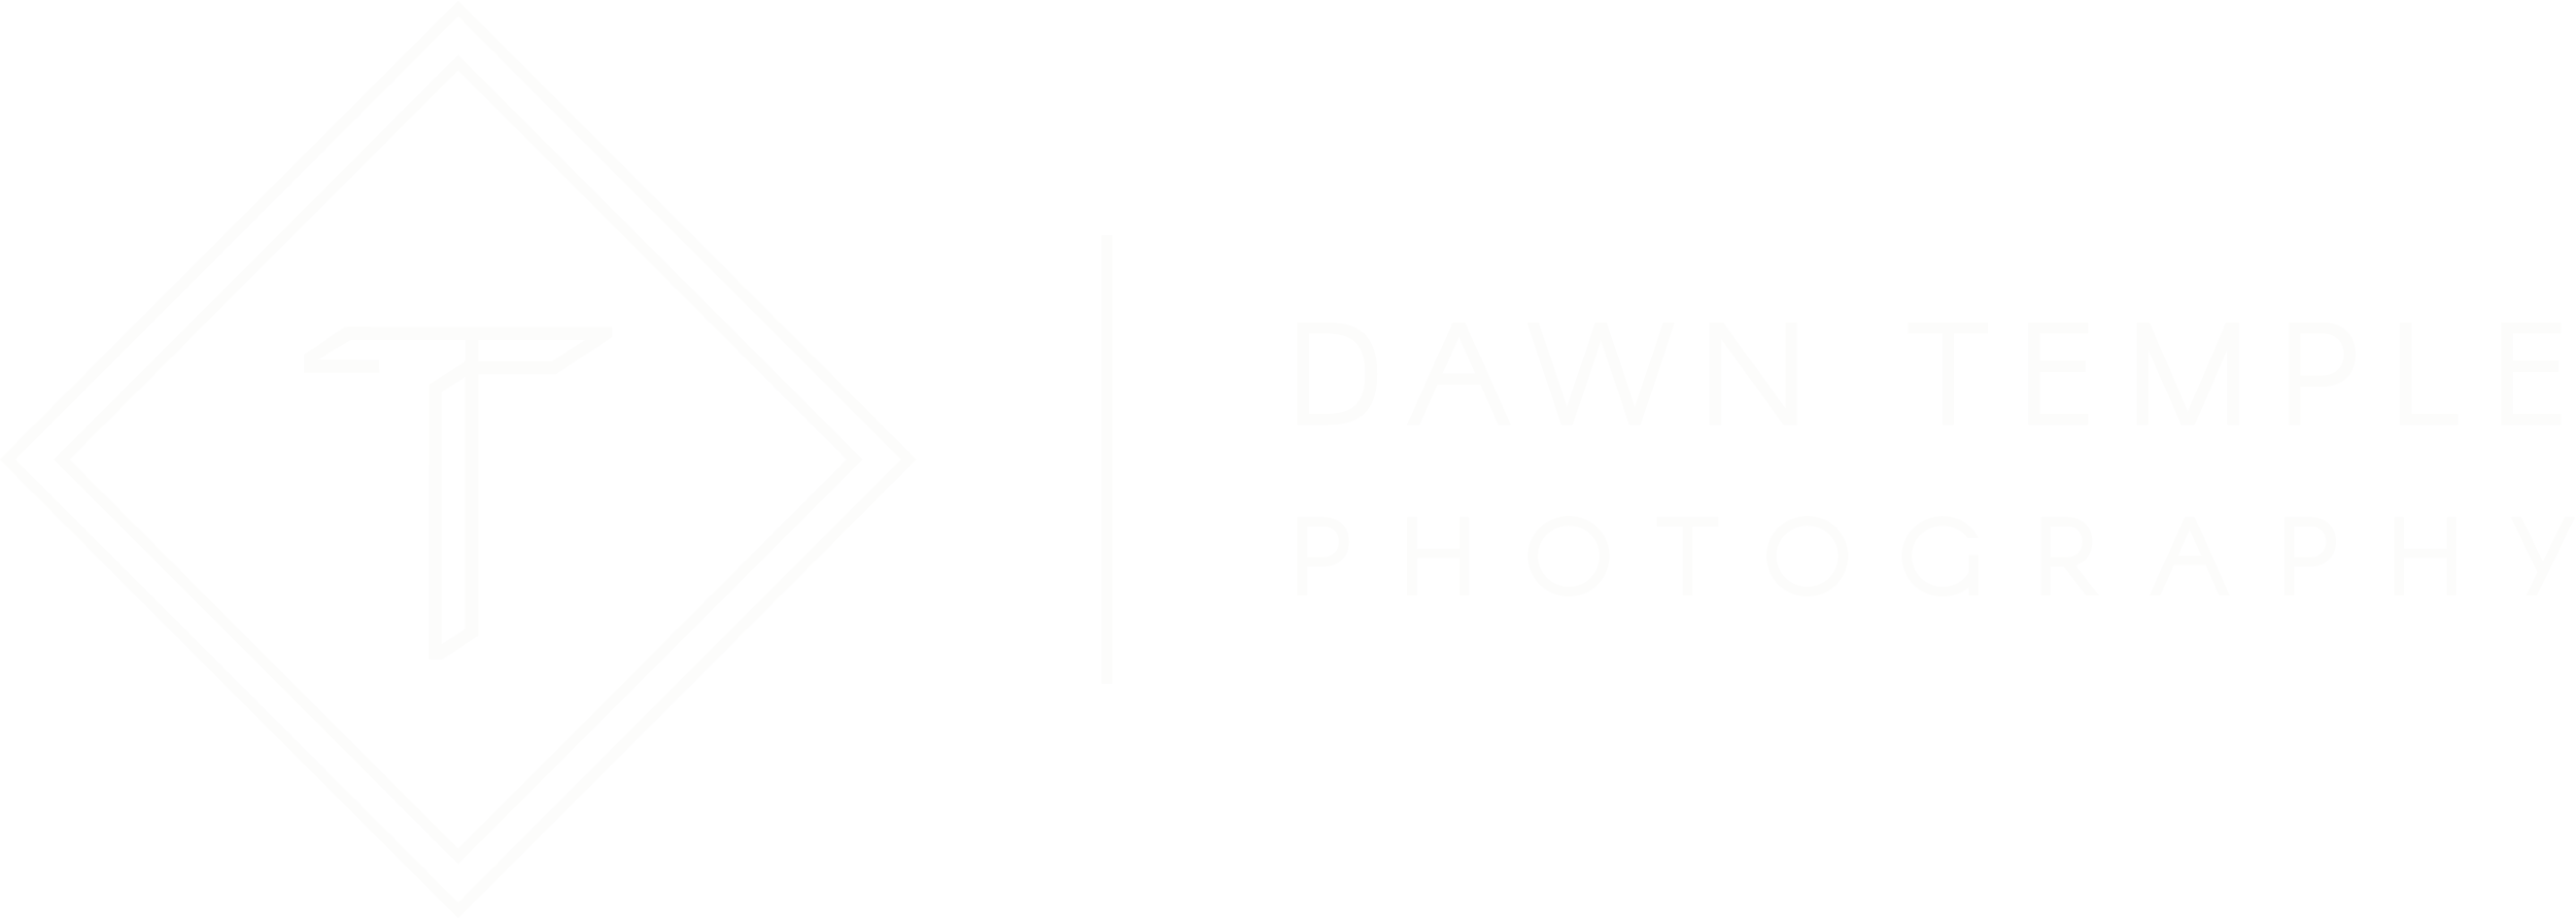 Dawn Temple Photography